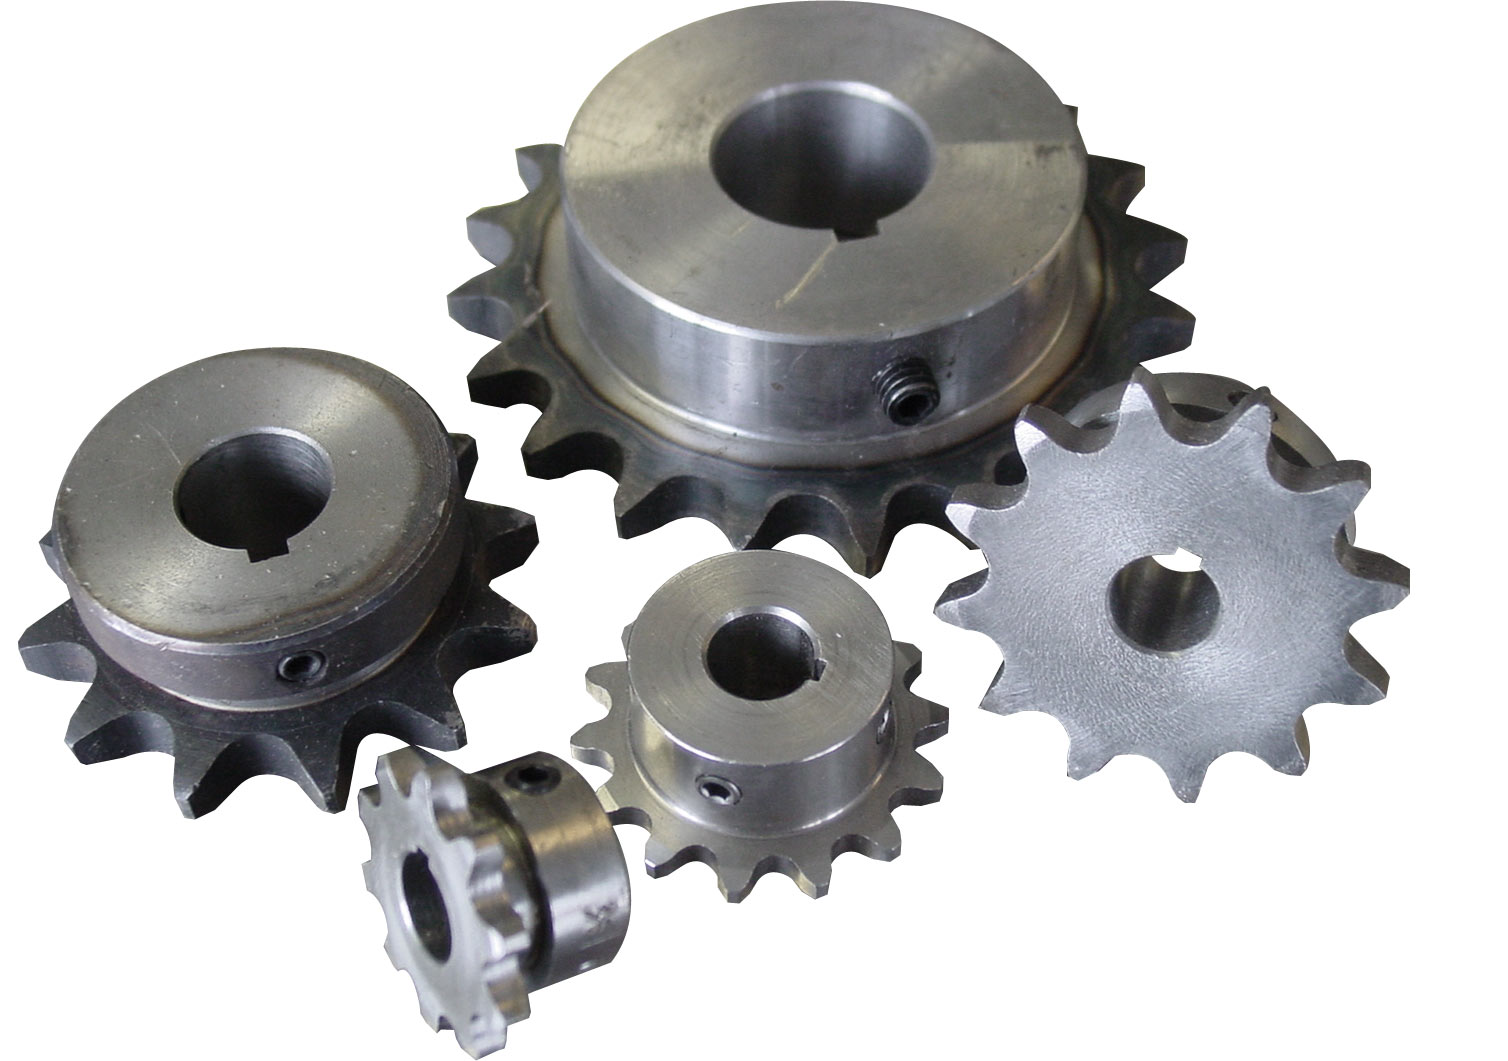 1/2 pitch Type B Sprocket - 16 teeth, 1-1/8 inch bore